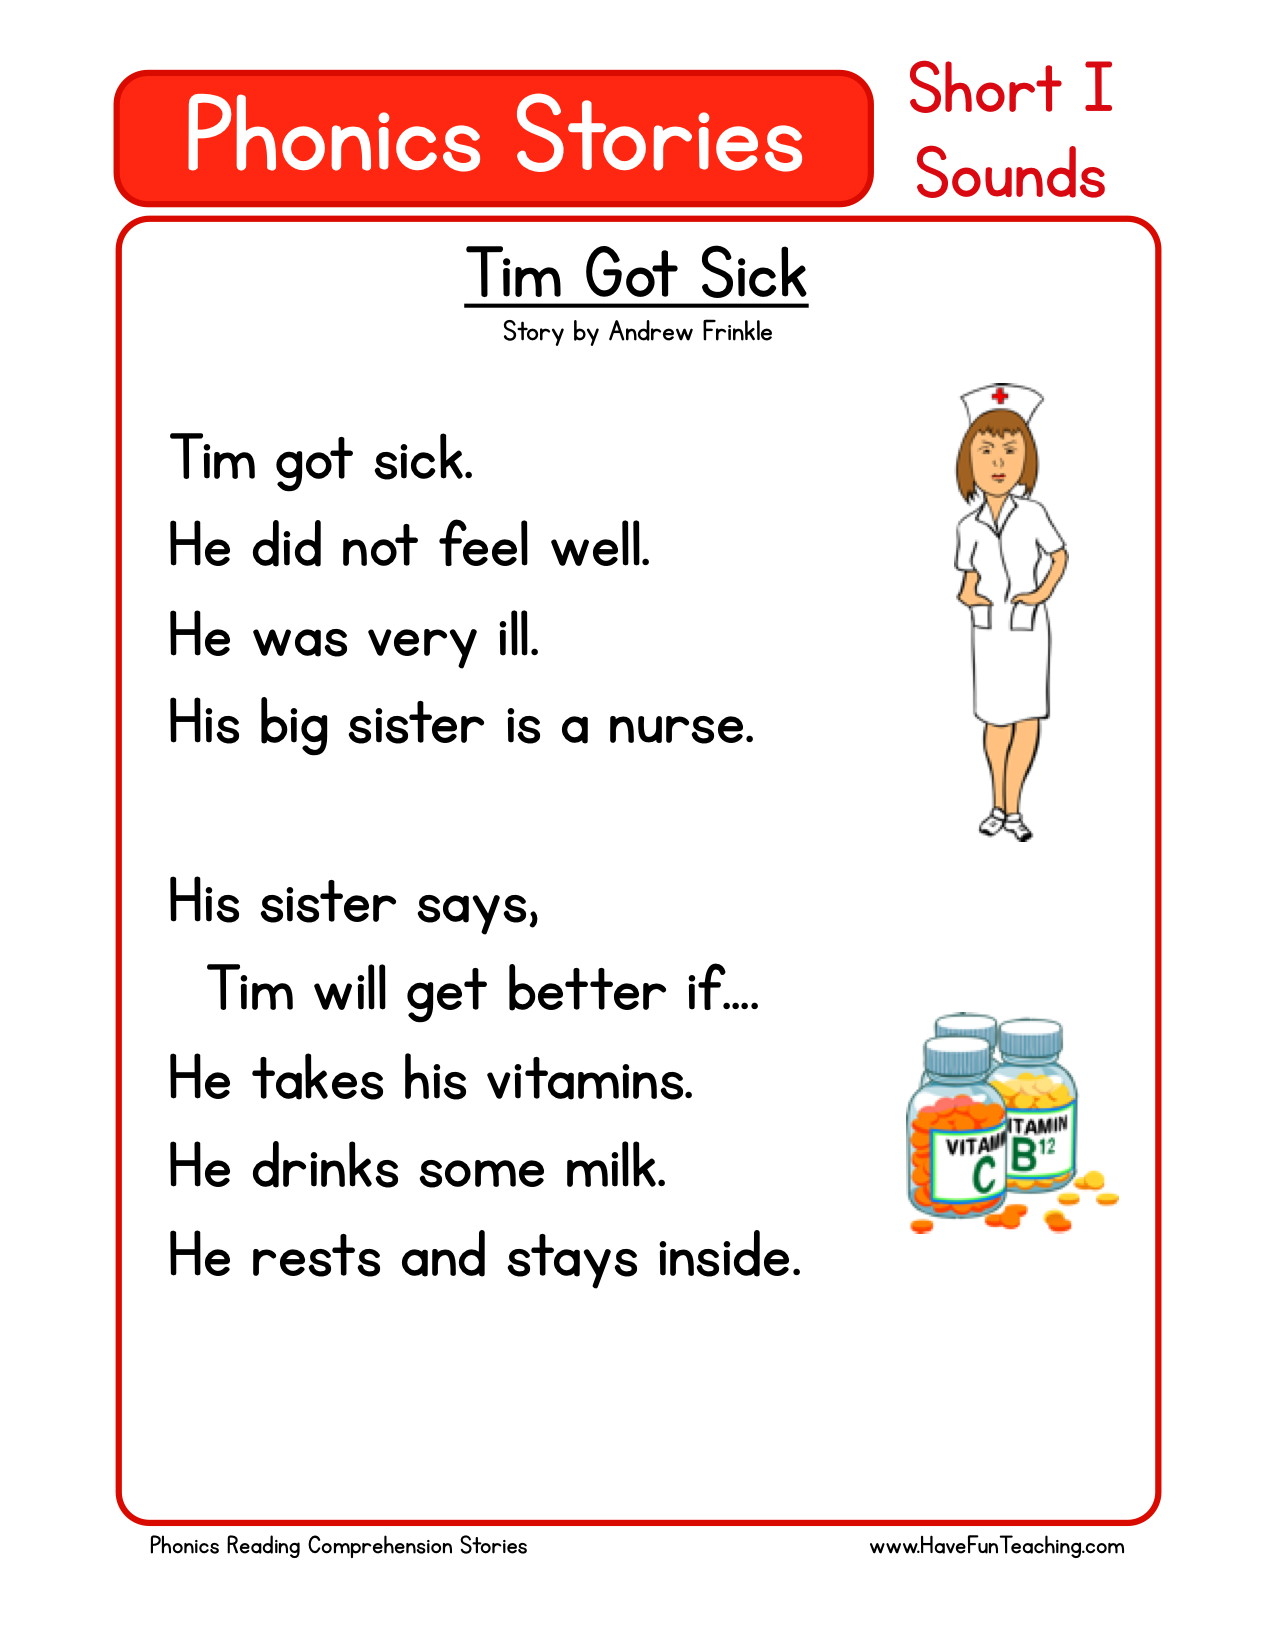 Reading Comprehension Worksheet - Tim Got Sick